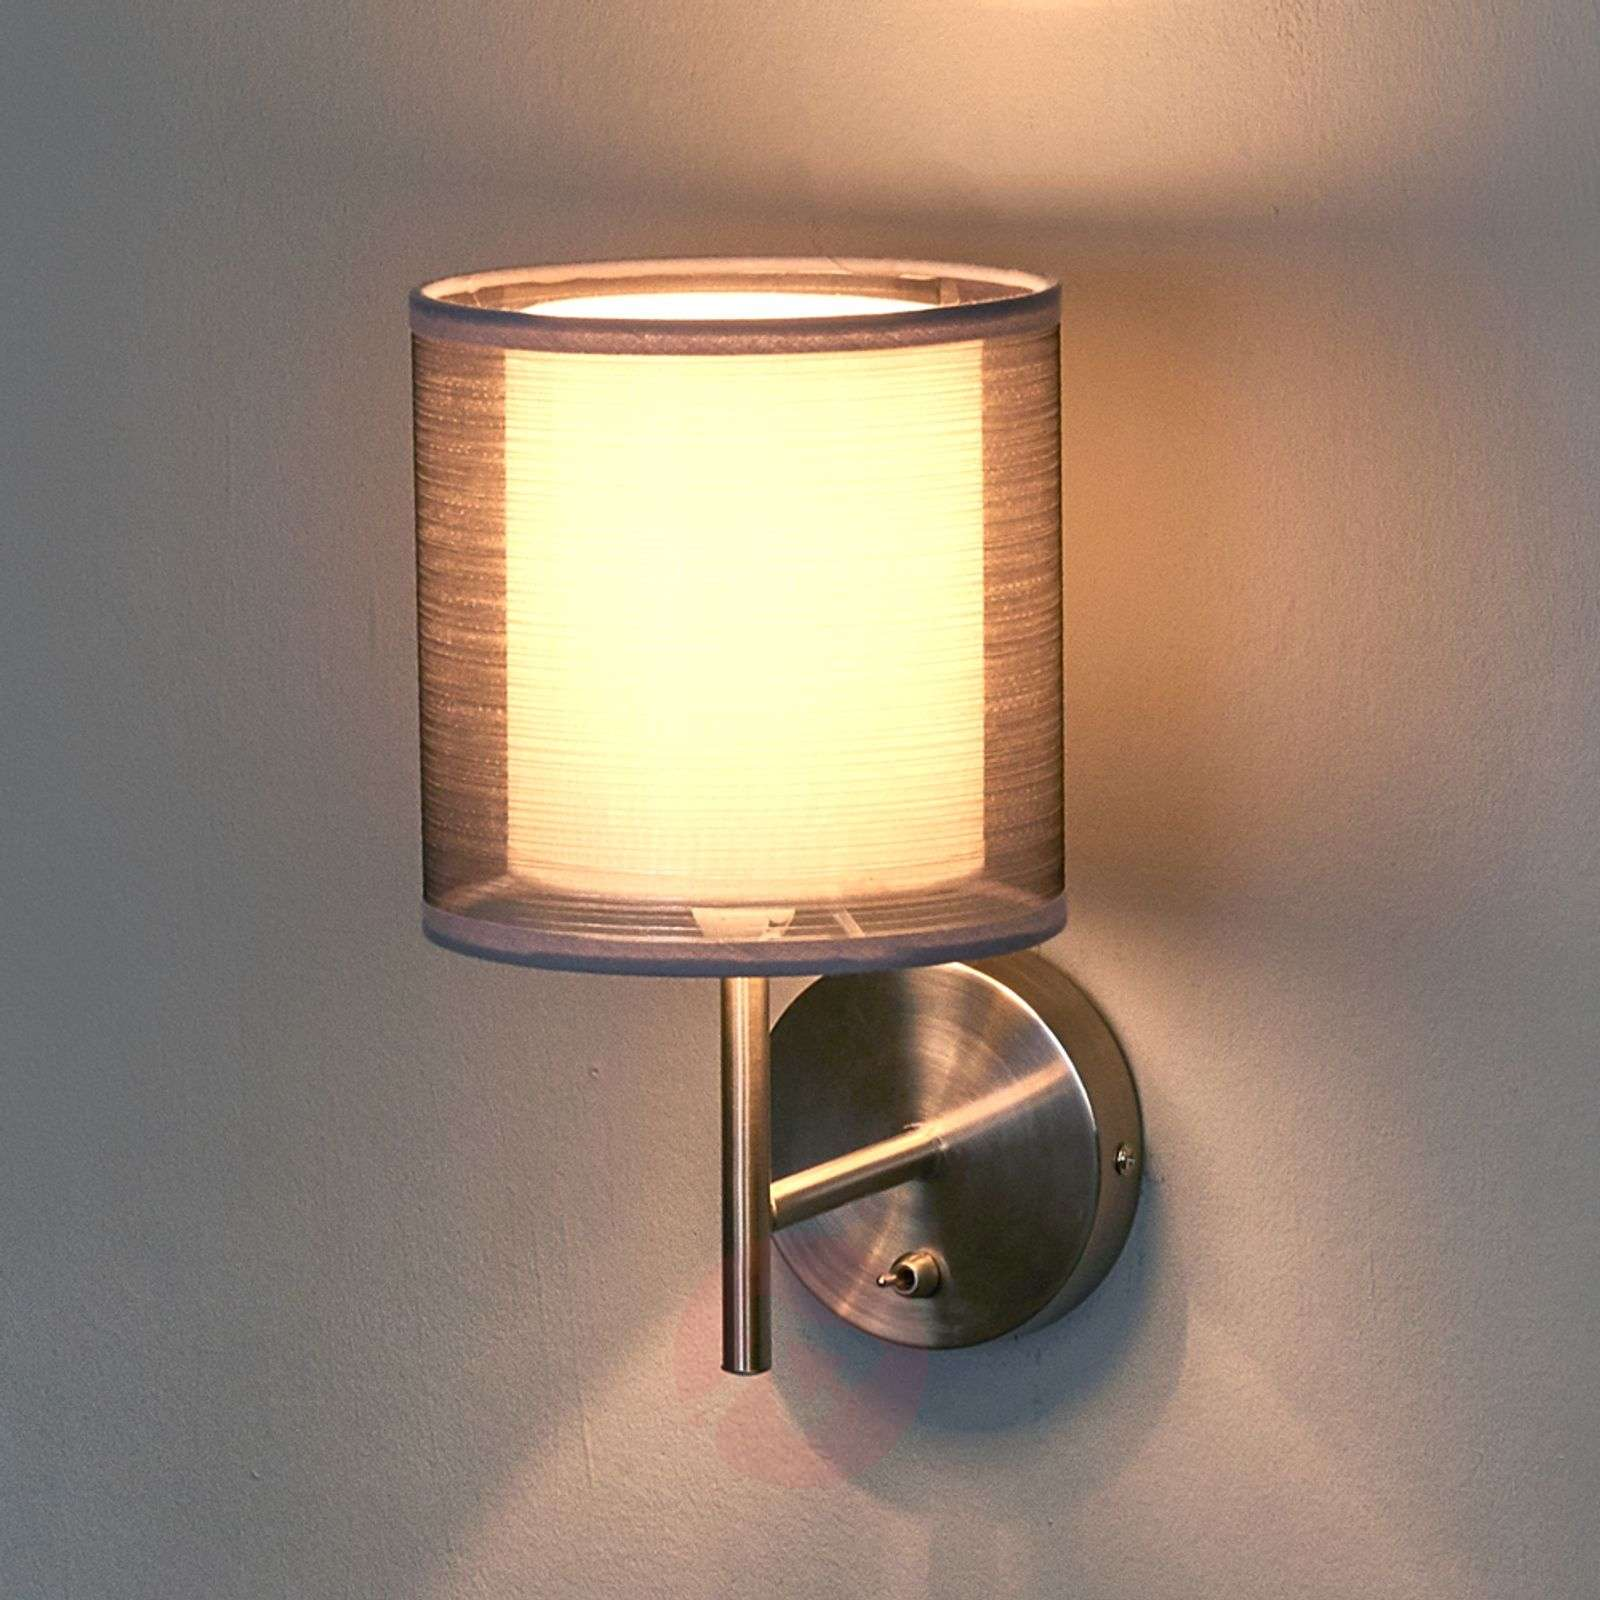 Enchanting Nica fabric wall light in grey-4018015-02